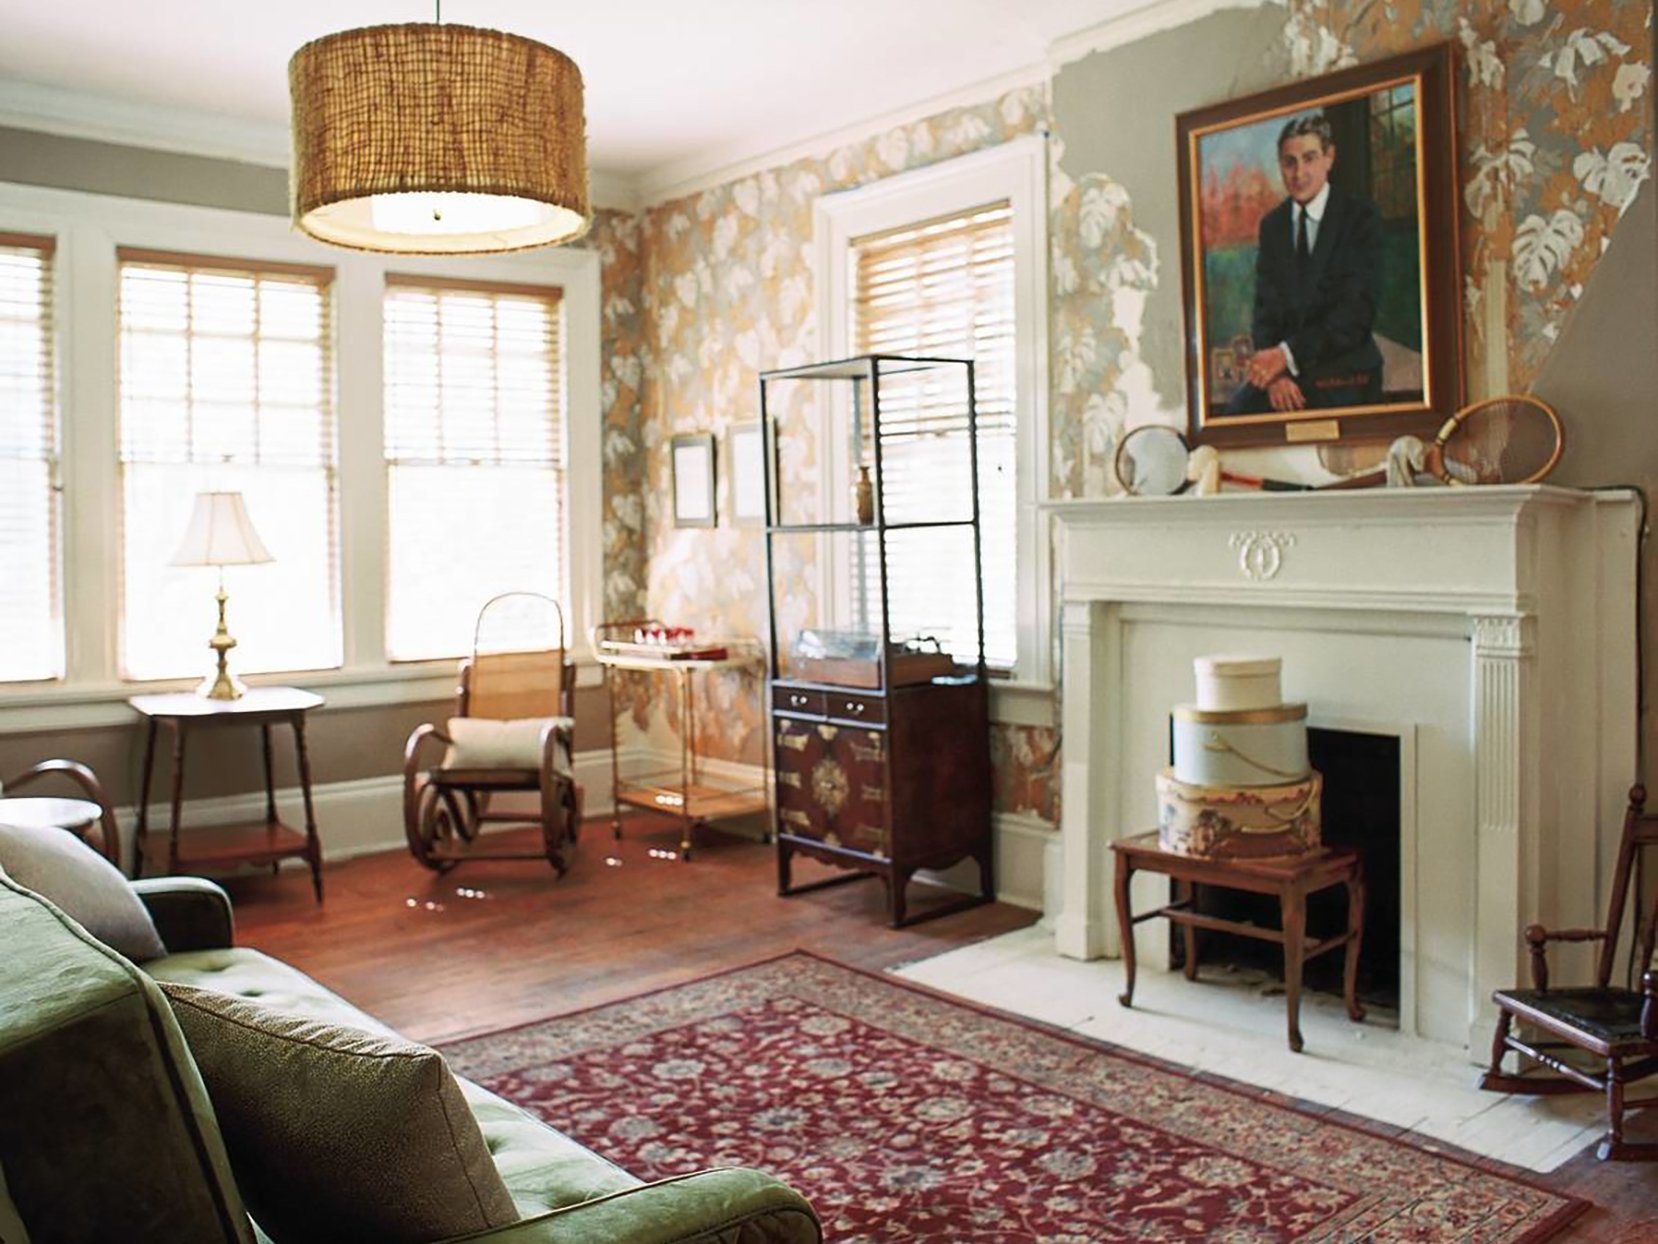 The living room of F. Scott Fitzgerald's home